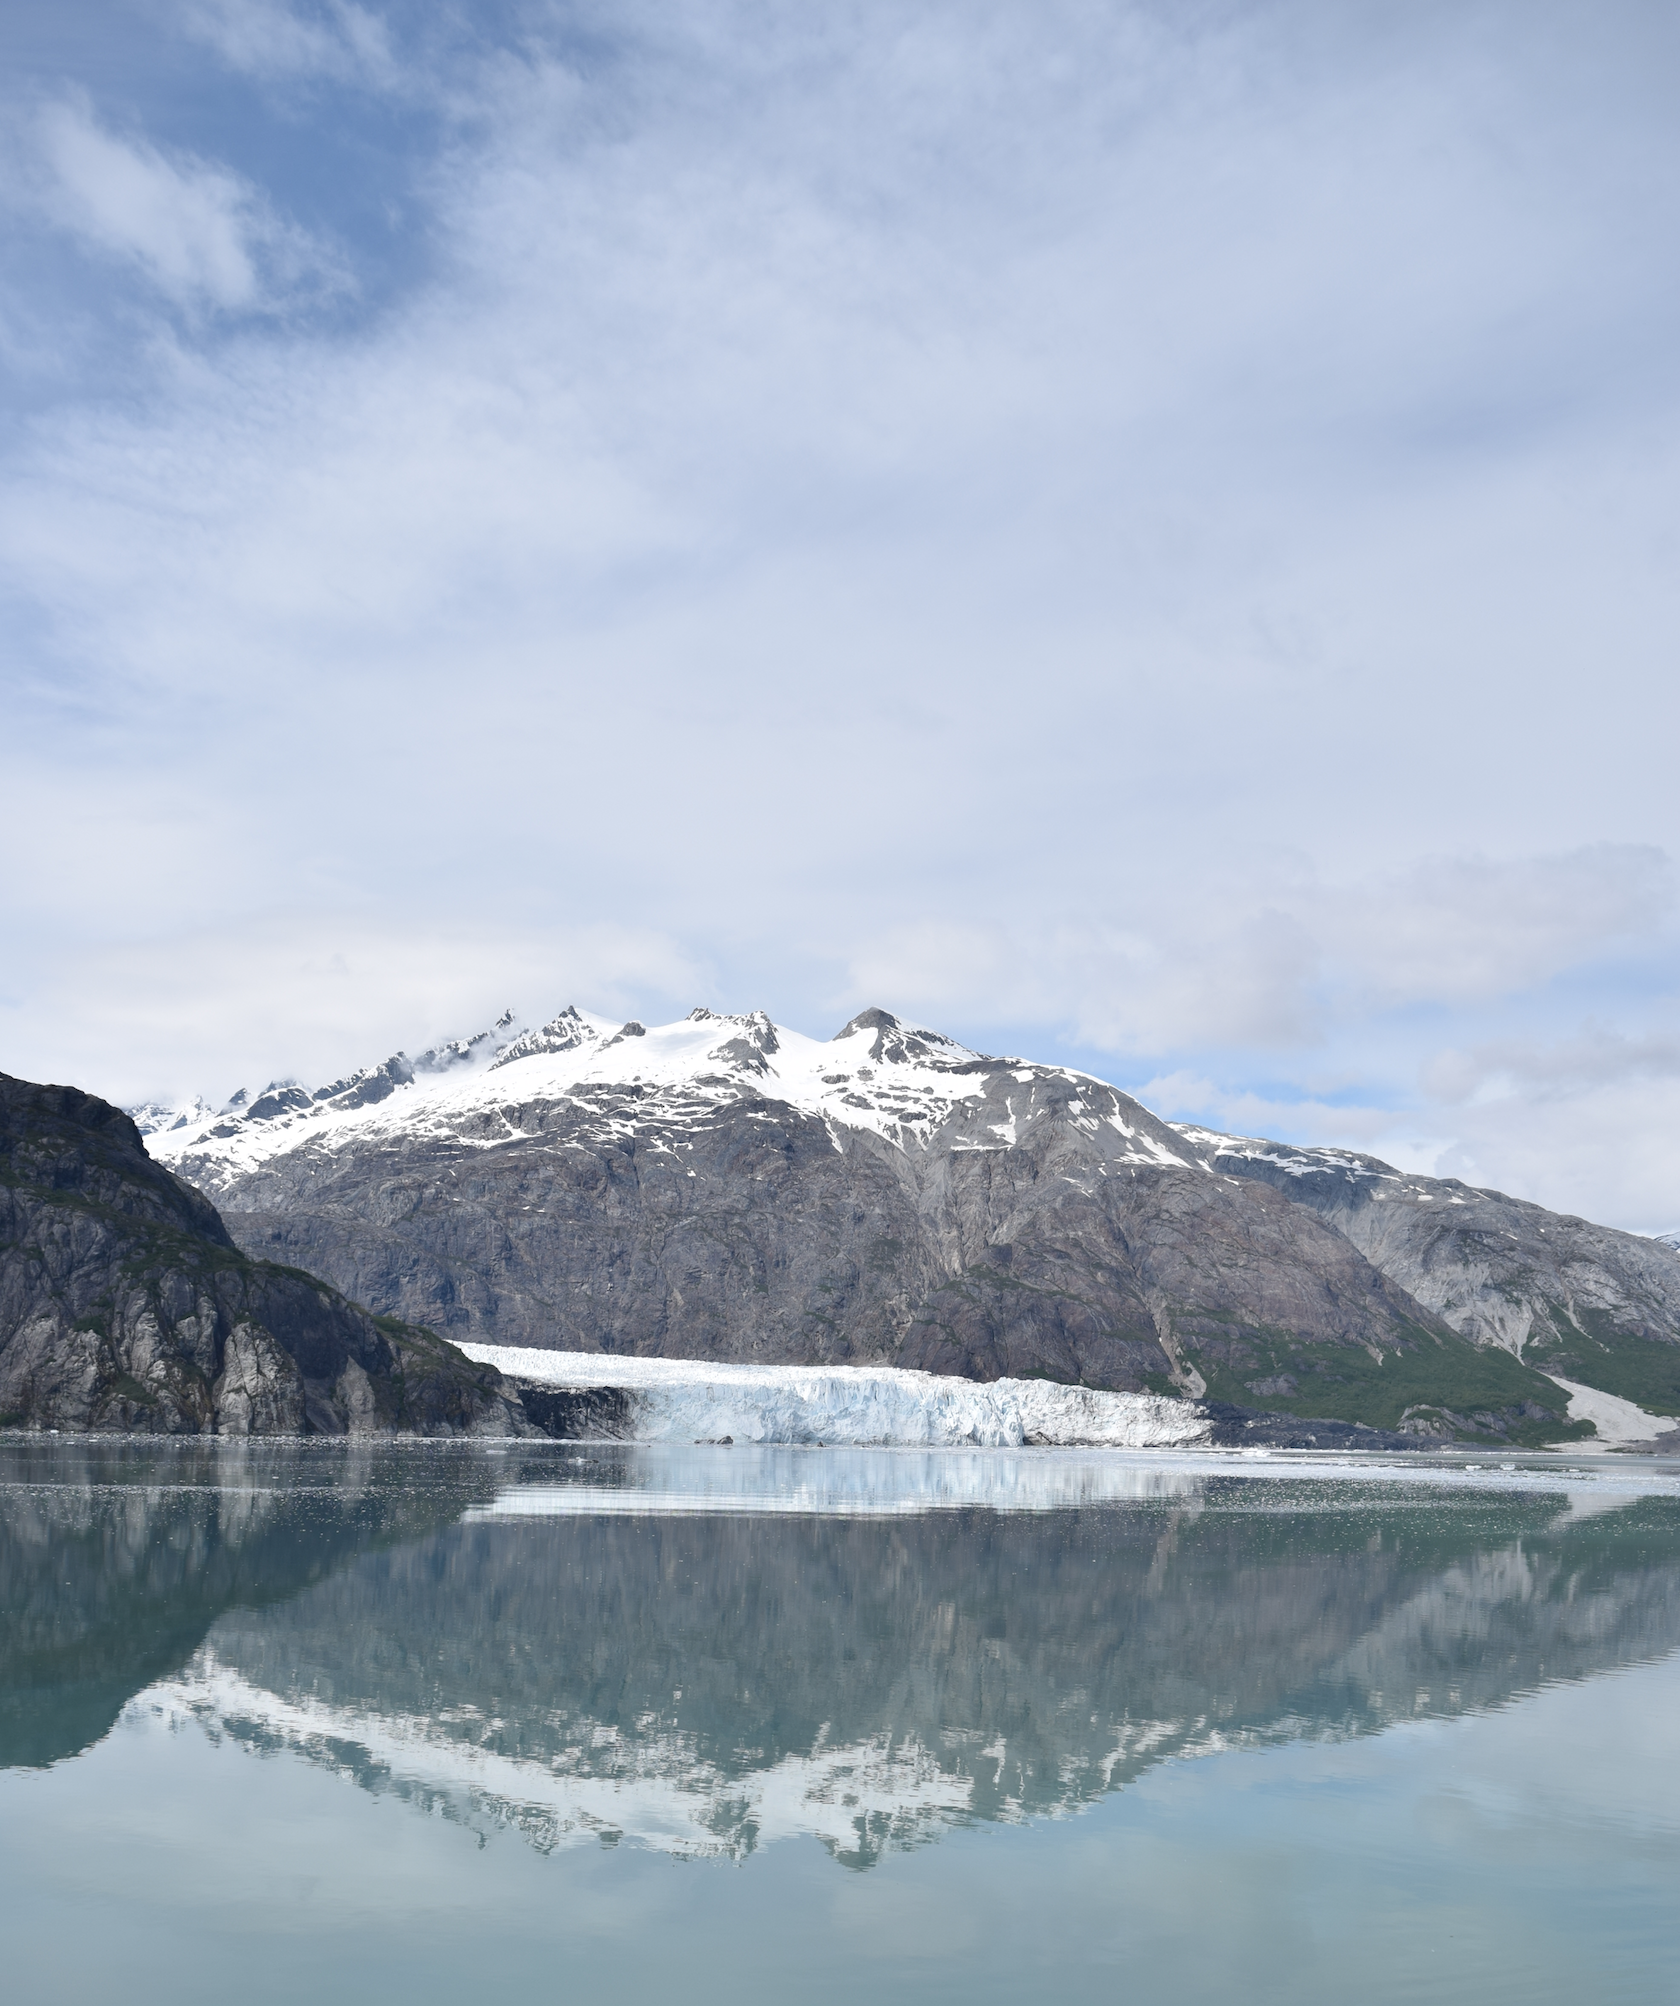 25 Photos To Inspire You To Take An Alaskan Cruise - Alaska Cruise - Cruise To Alaska - Alaska In Summer - Alaskan Wildlife - Alaska Glaciers - Communikait by Kait Hanson